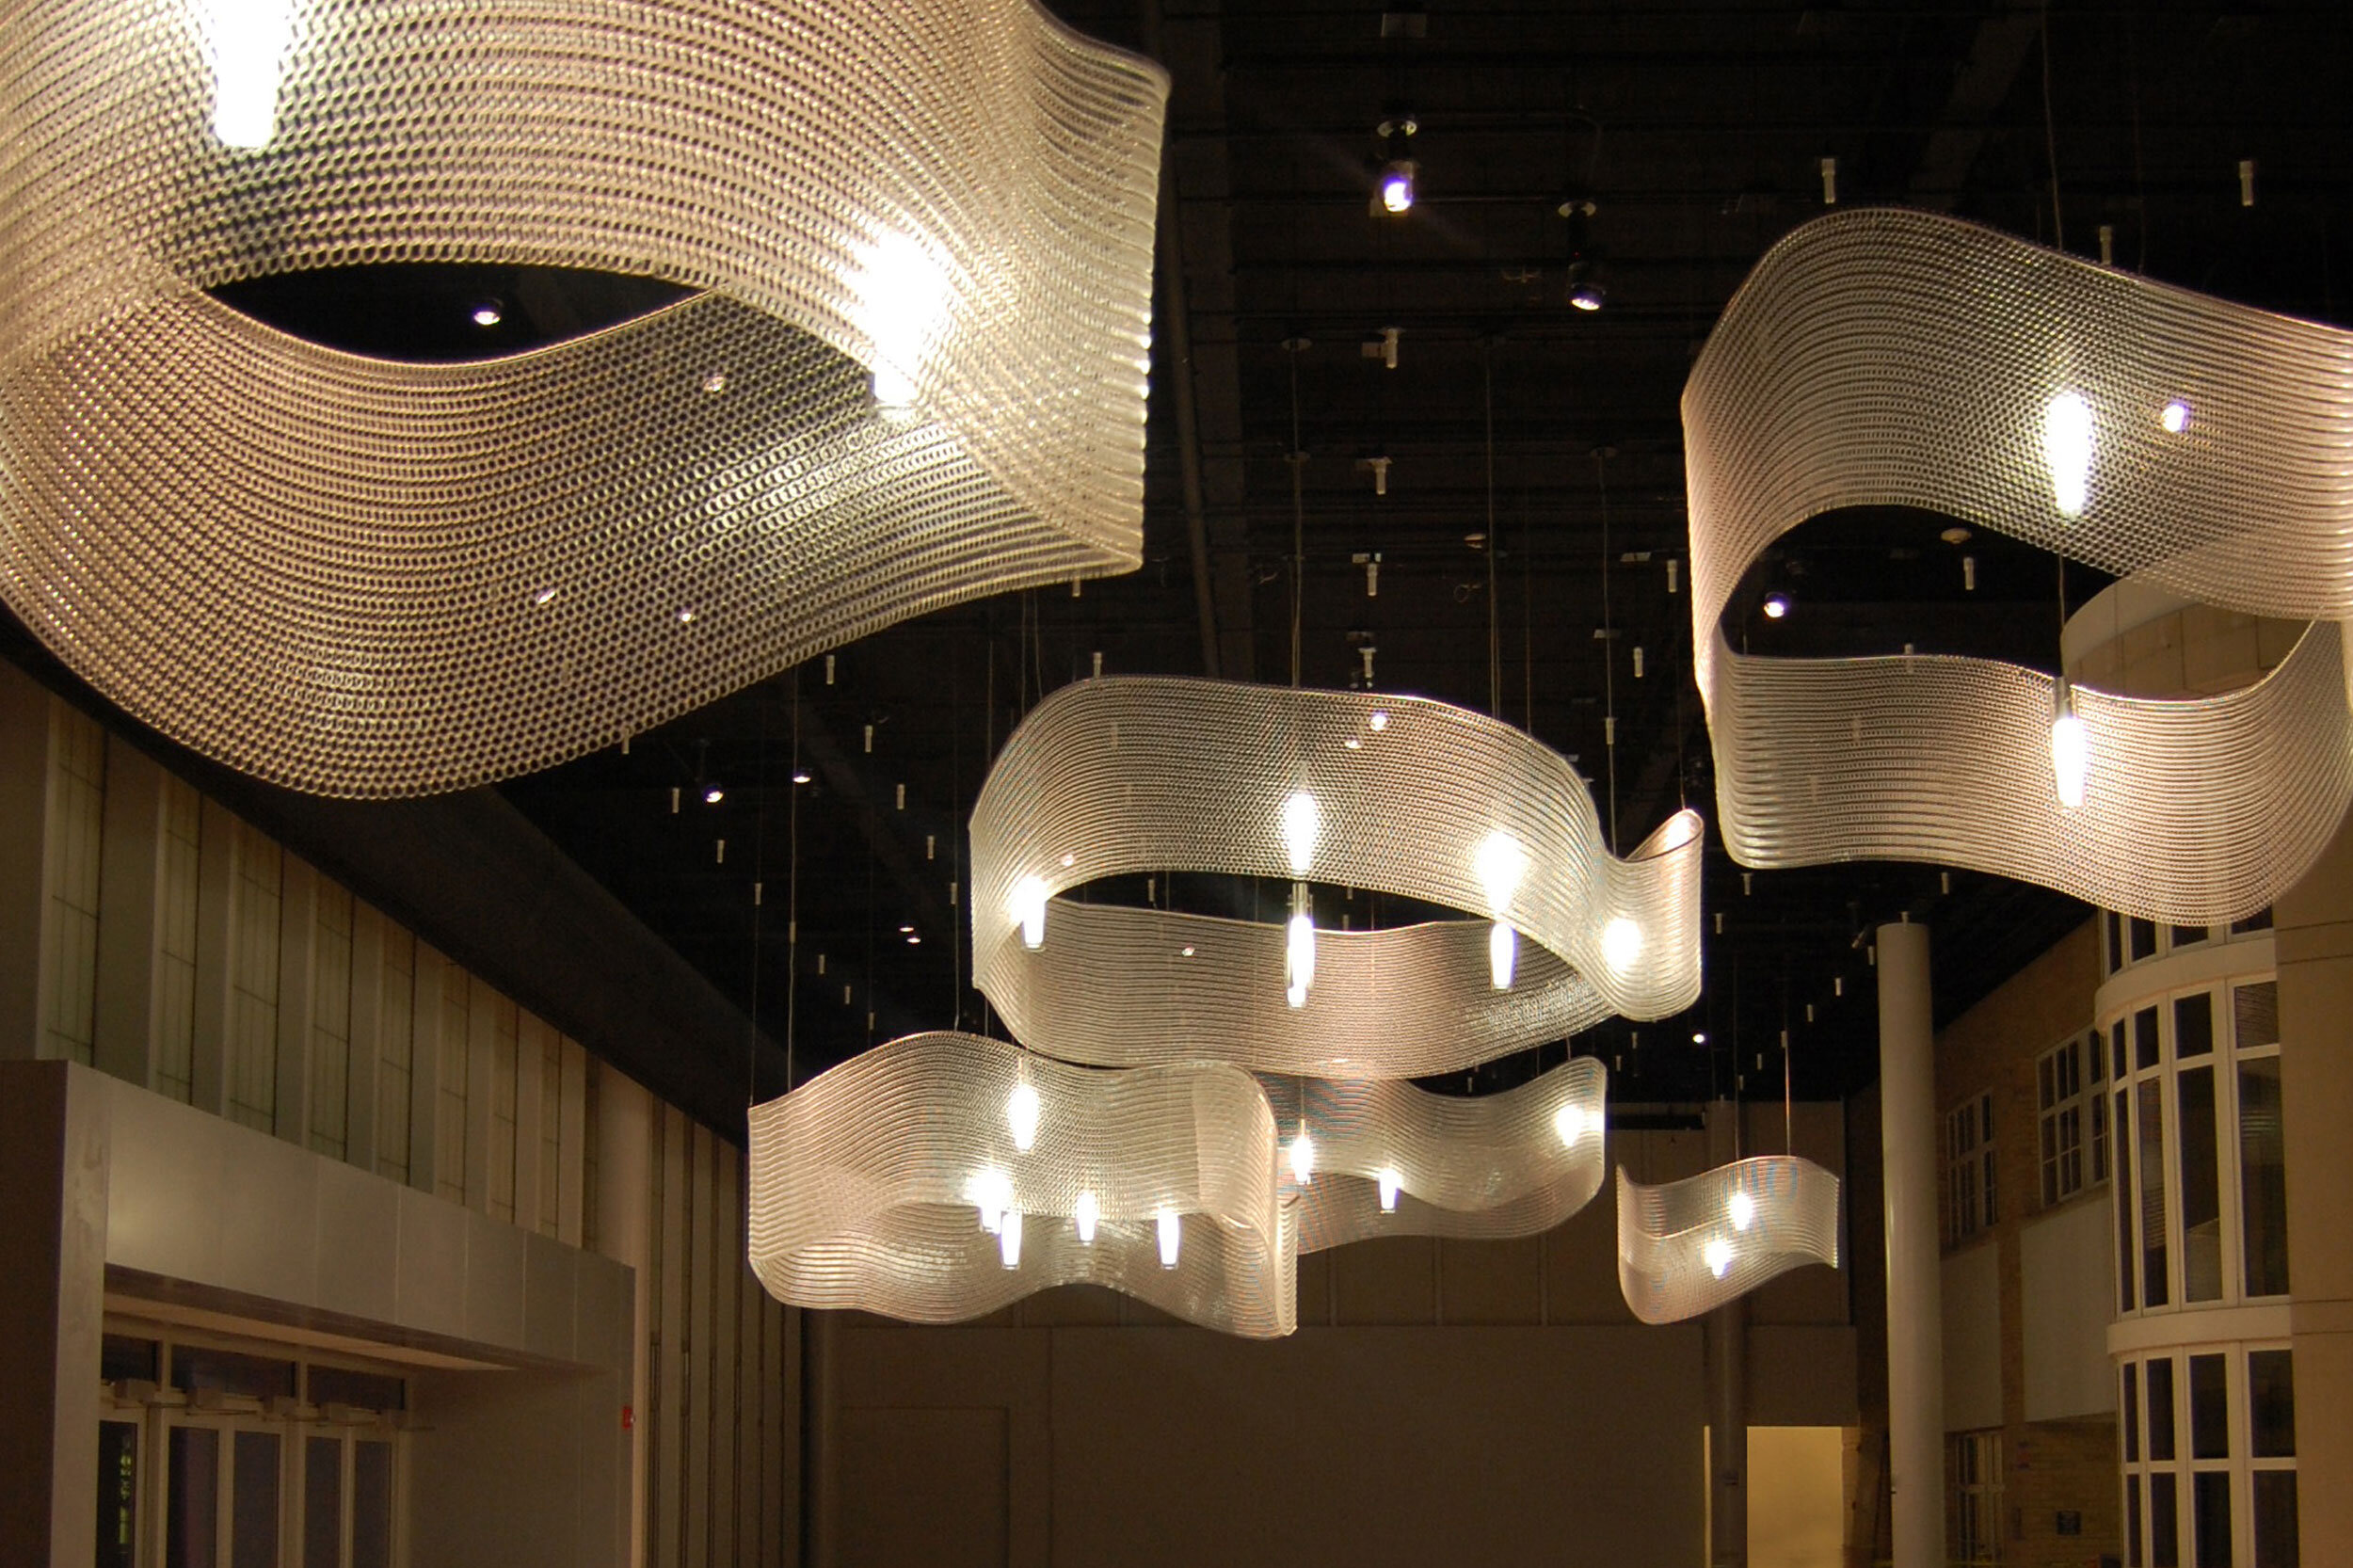 Cornell University Ceiling Feature using Kaynemaile mesh